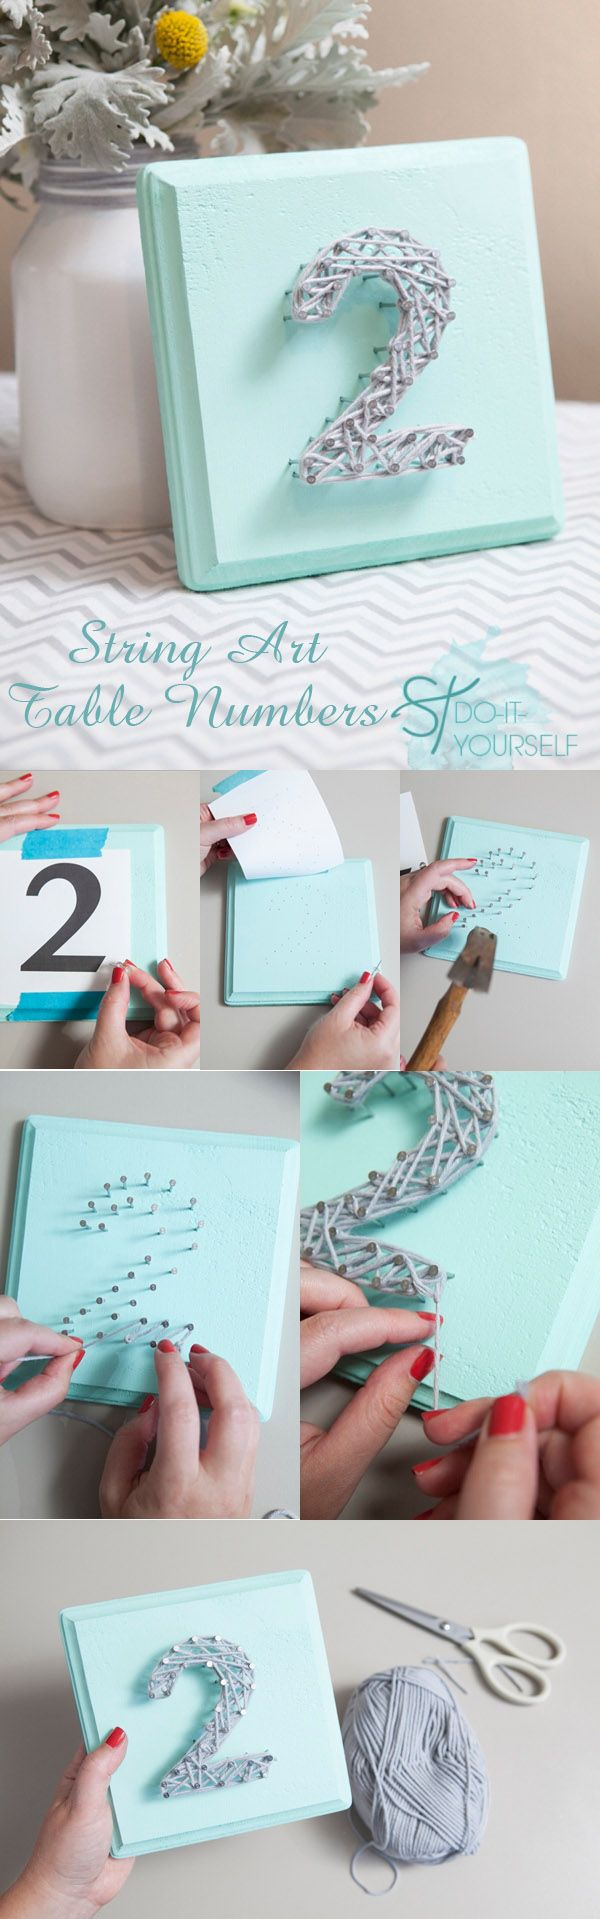 Uncategorized Table Number Ideas Wedding best 25 wedding table numbers ideas on pinterest diy string art number ideas